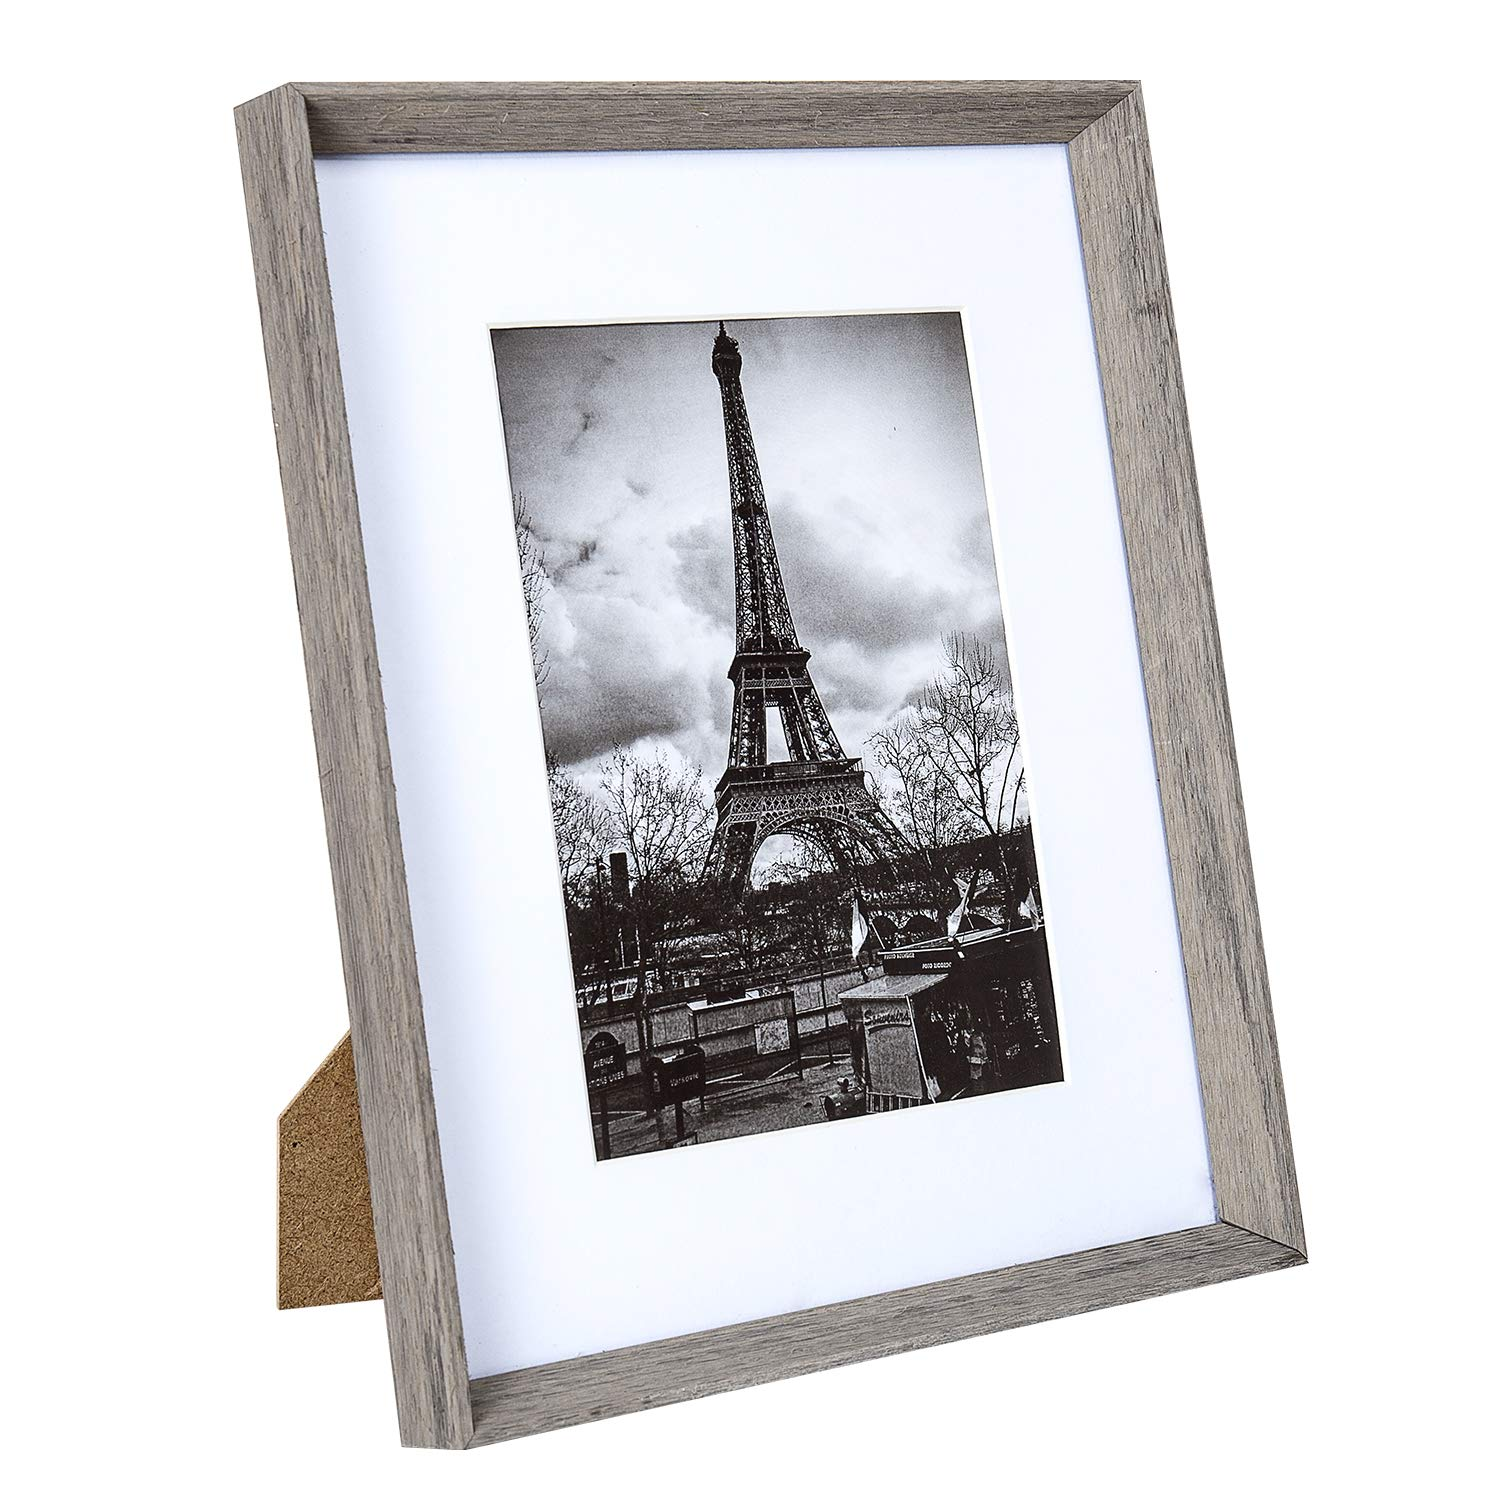 upsimples 8x10 Picture Frame with Real Glass and Mat,Rustic Photo Frames for Wall or Tabletop Display,Set of 5 by upsimples (Image #4)